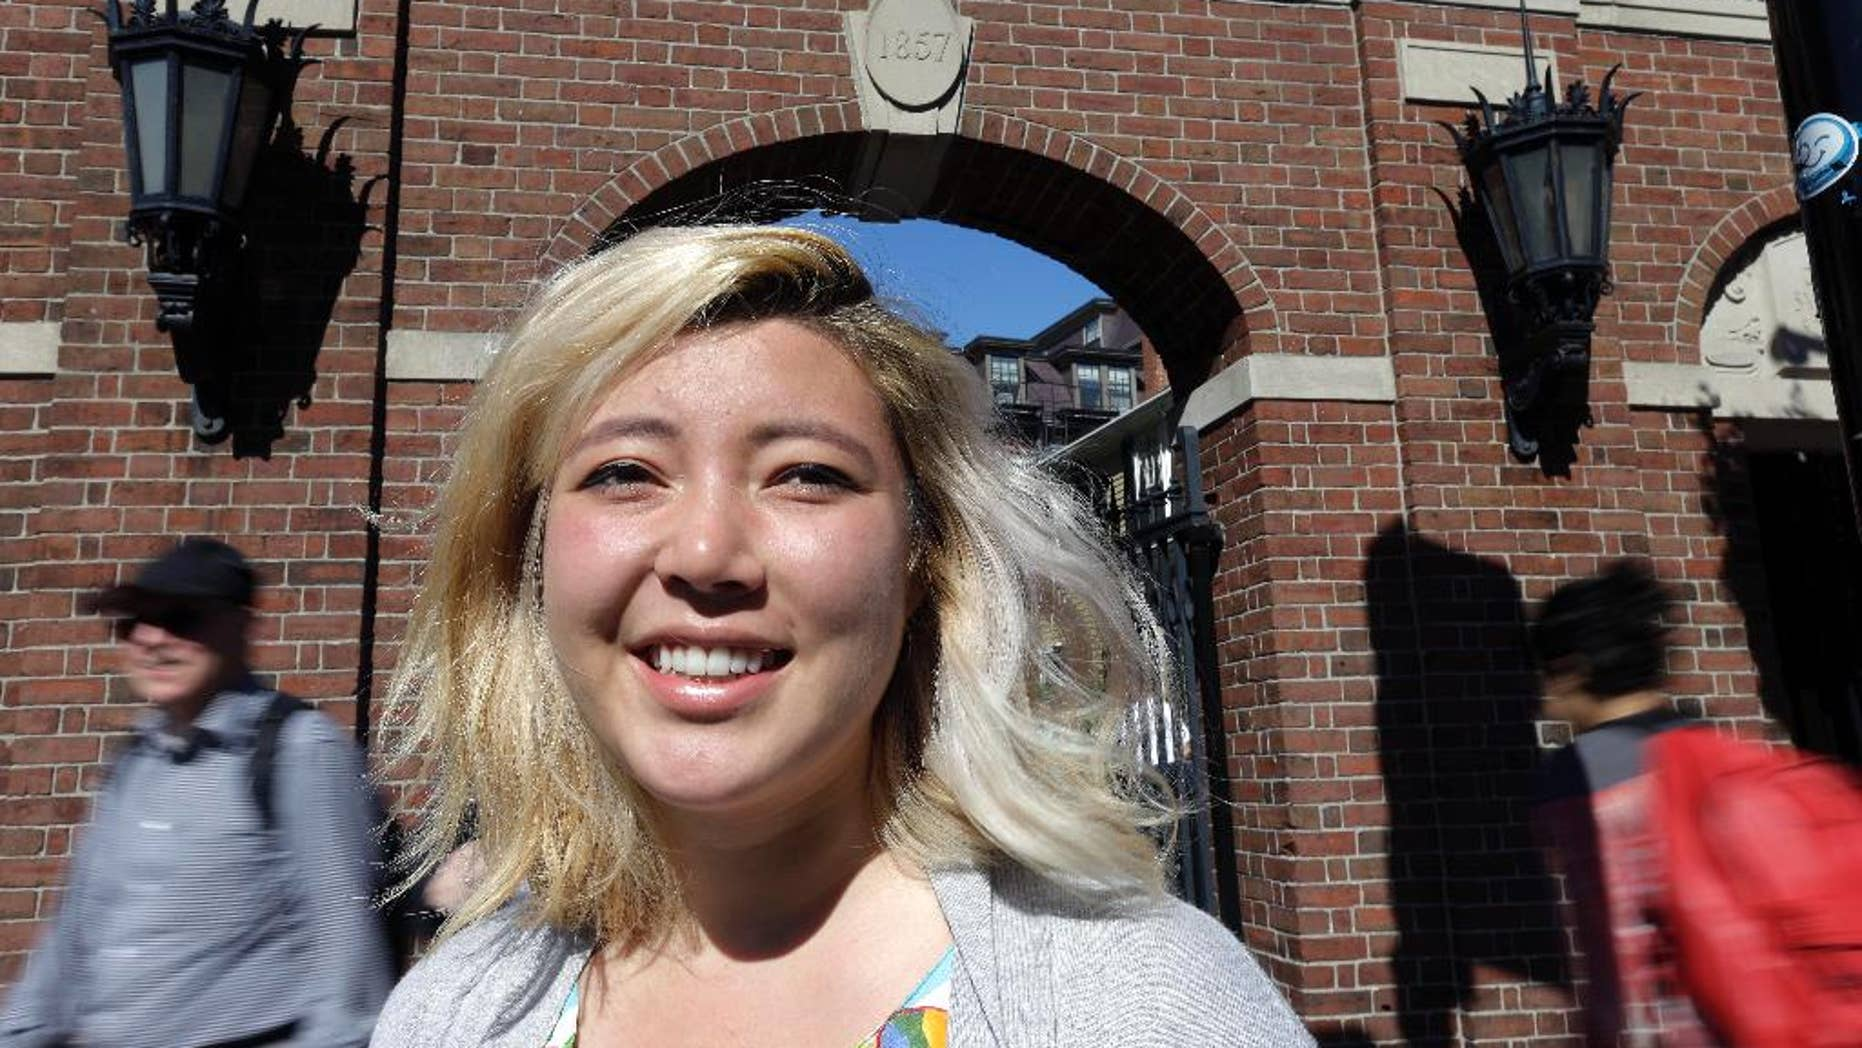 """In this Thursday, Sept. 17, 2015 photo, Laila Smith, a junior at Harvard University, poses at a gate leading to Harvard Yard in Cambridge, Mass. During the registration process, students at Harvard are now allowed to indicate which pronouns they use. Forms include typical options like """"he"""" and """"she"""" but also gender-neutral options like """"ze"""" or """"they."""" Smith filled in the pronouns """"they"""" and """"their"""" on the form. (AP Photo/Steven Senne)"""